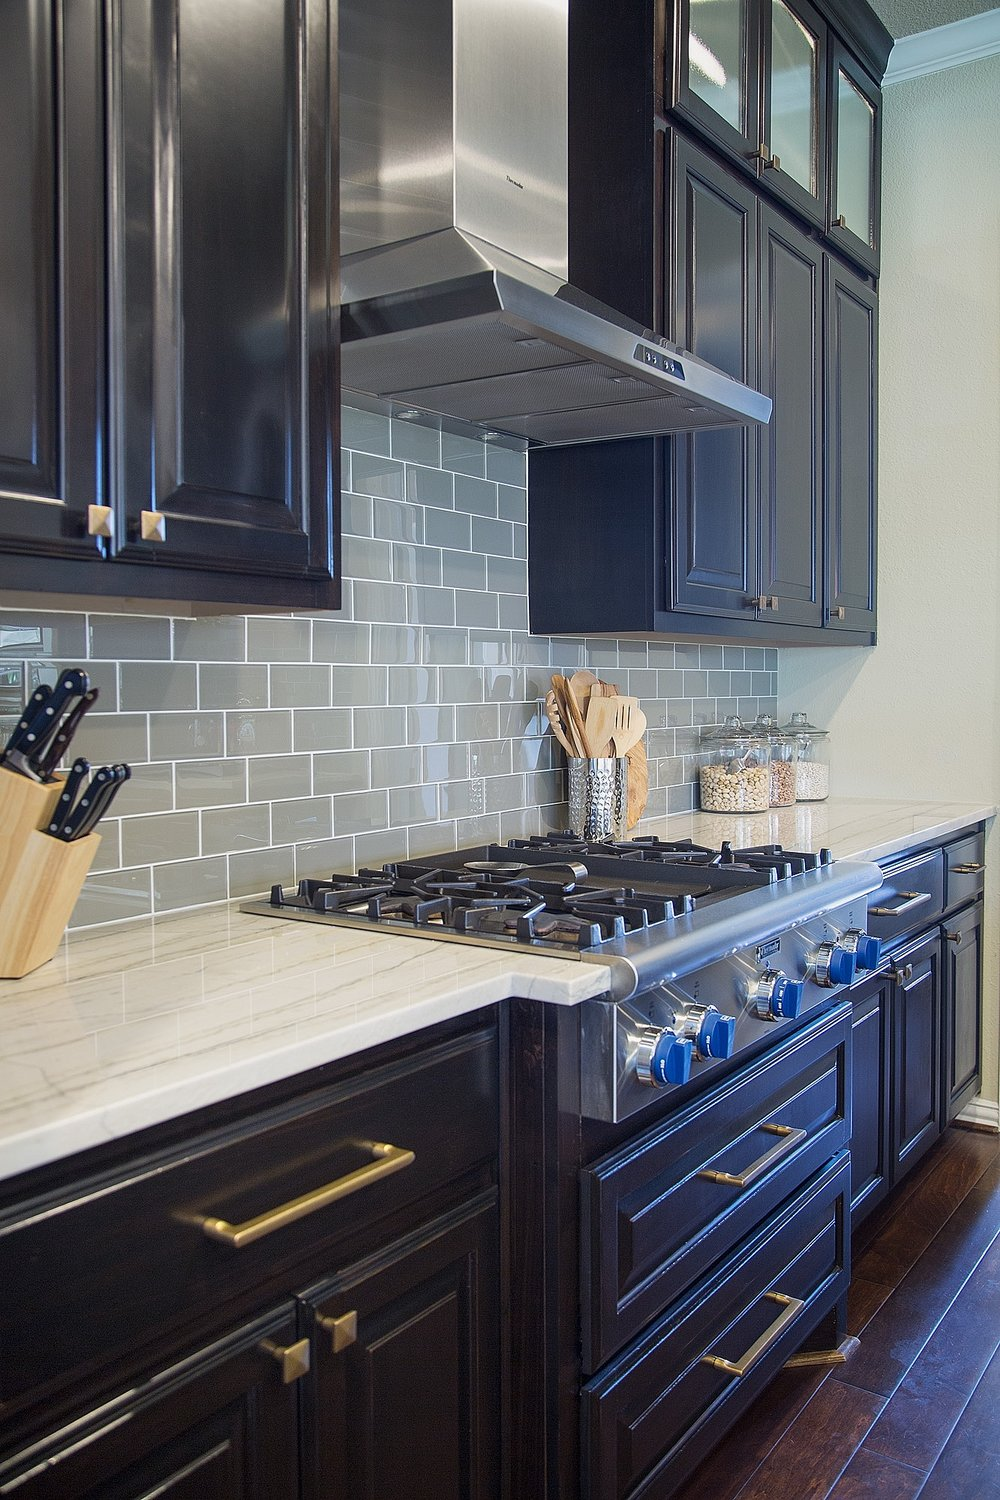 The Side Backsplash Dilemma: Should You Have One, Or No